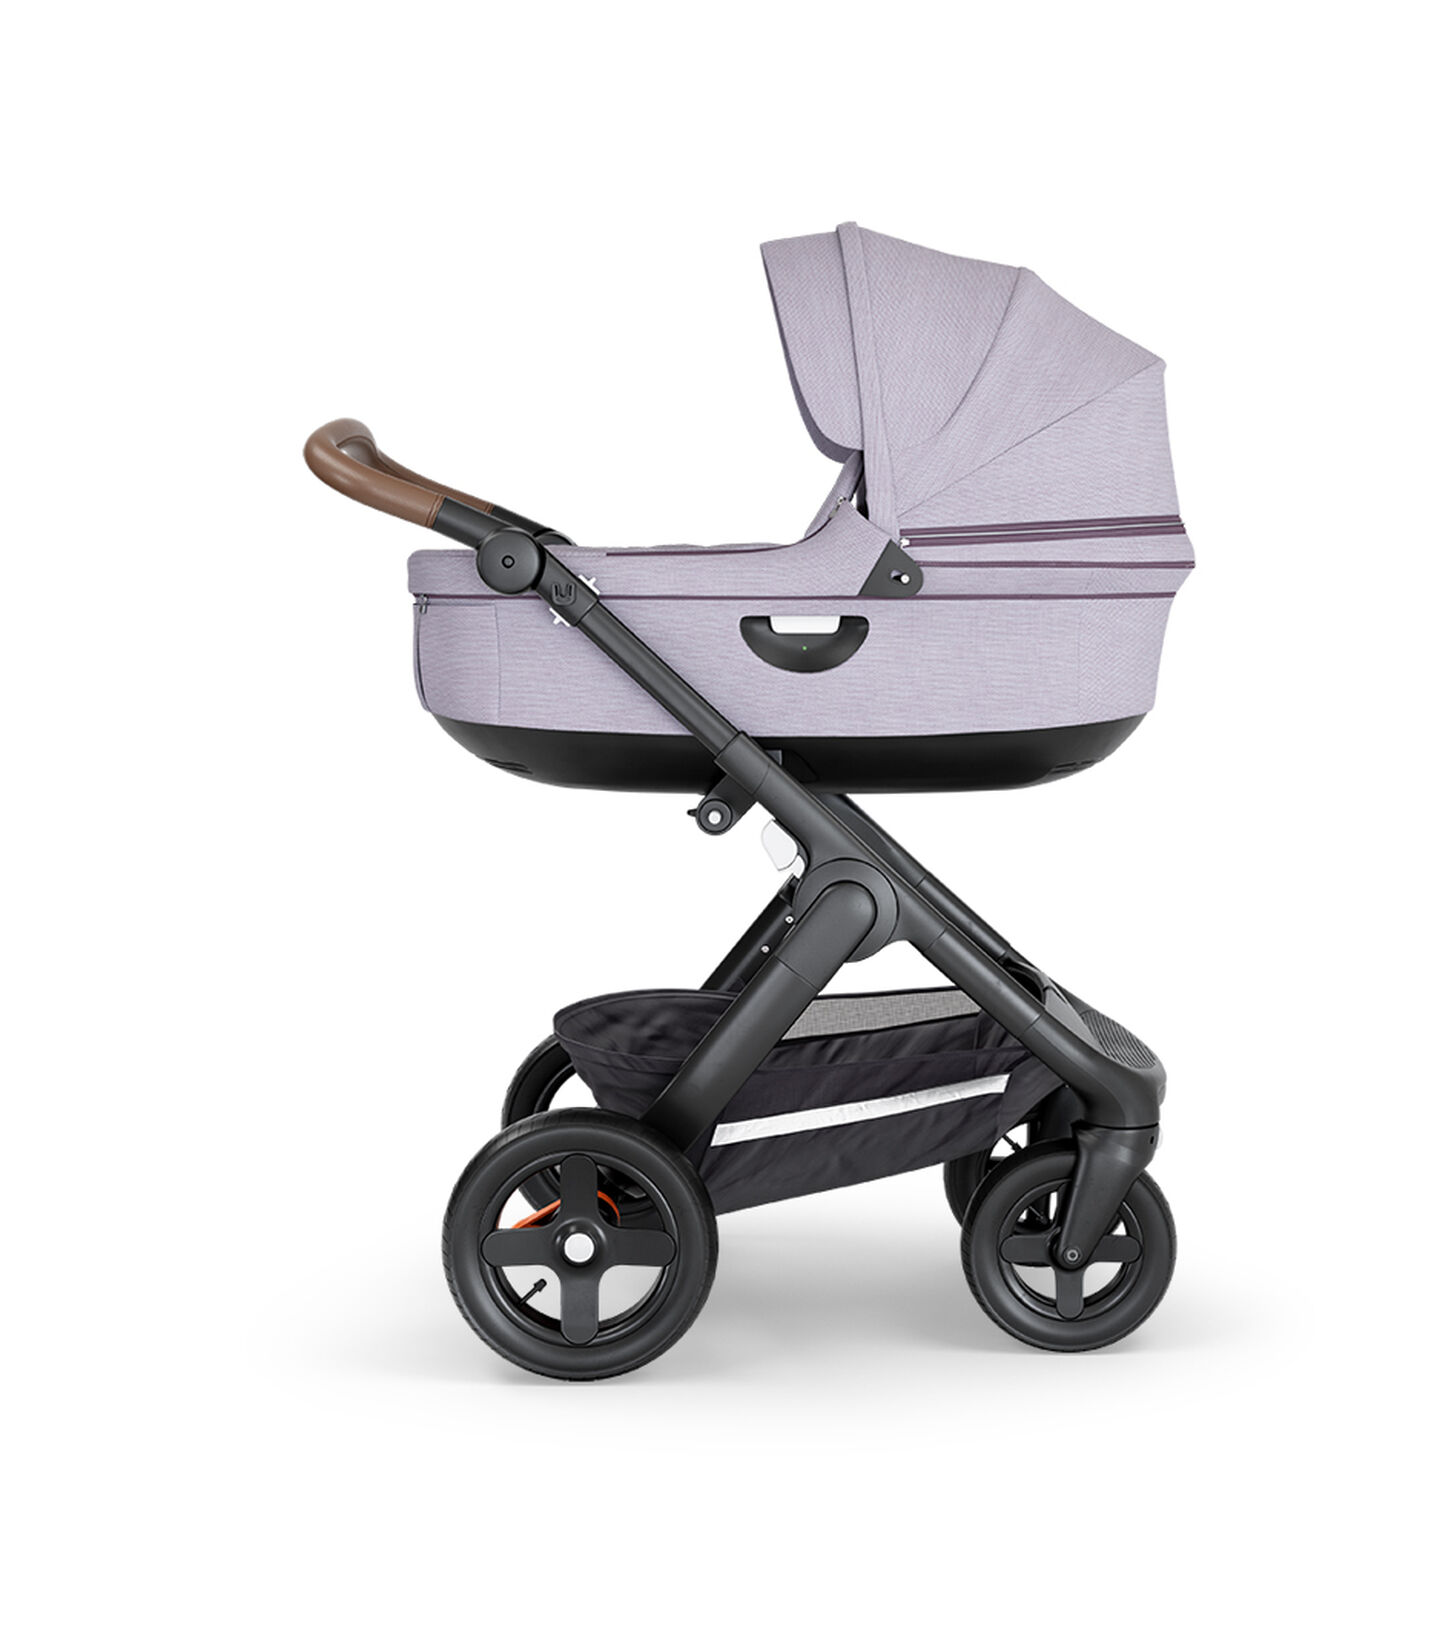 Stokke® Trailz™ with Black Chassis, Brown Leatherette and Terrain Wheels. Stokke® Stroller Carry Cot, Brush Lilac.